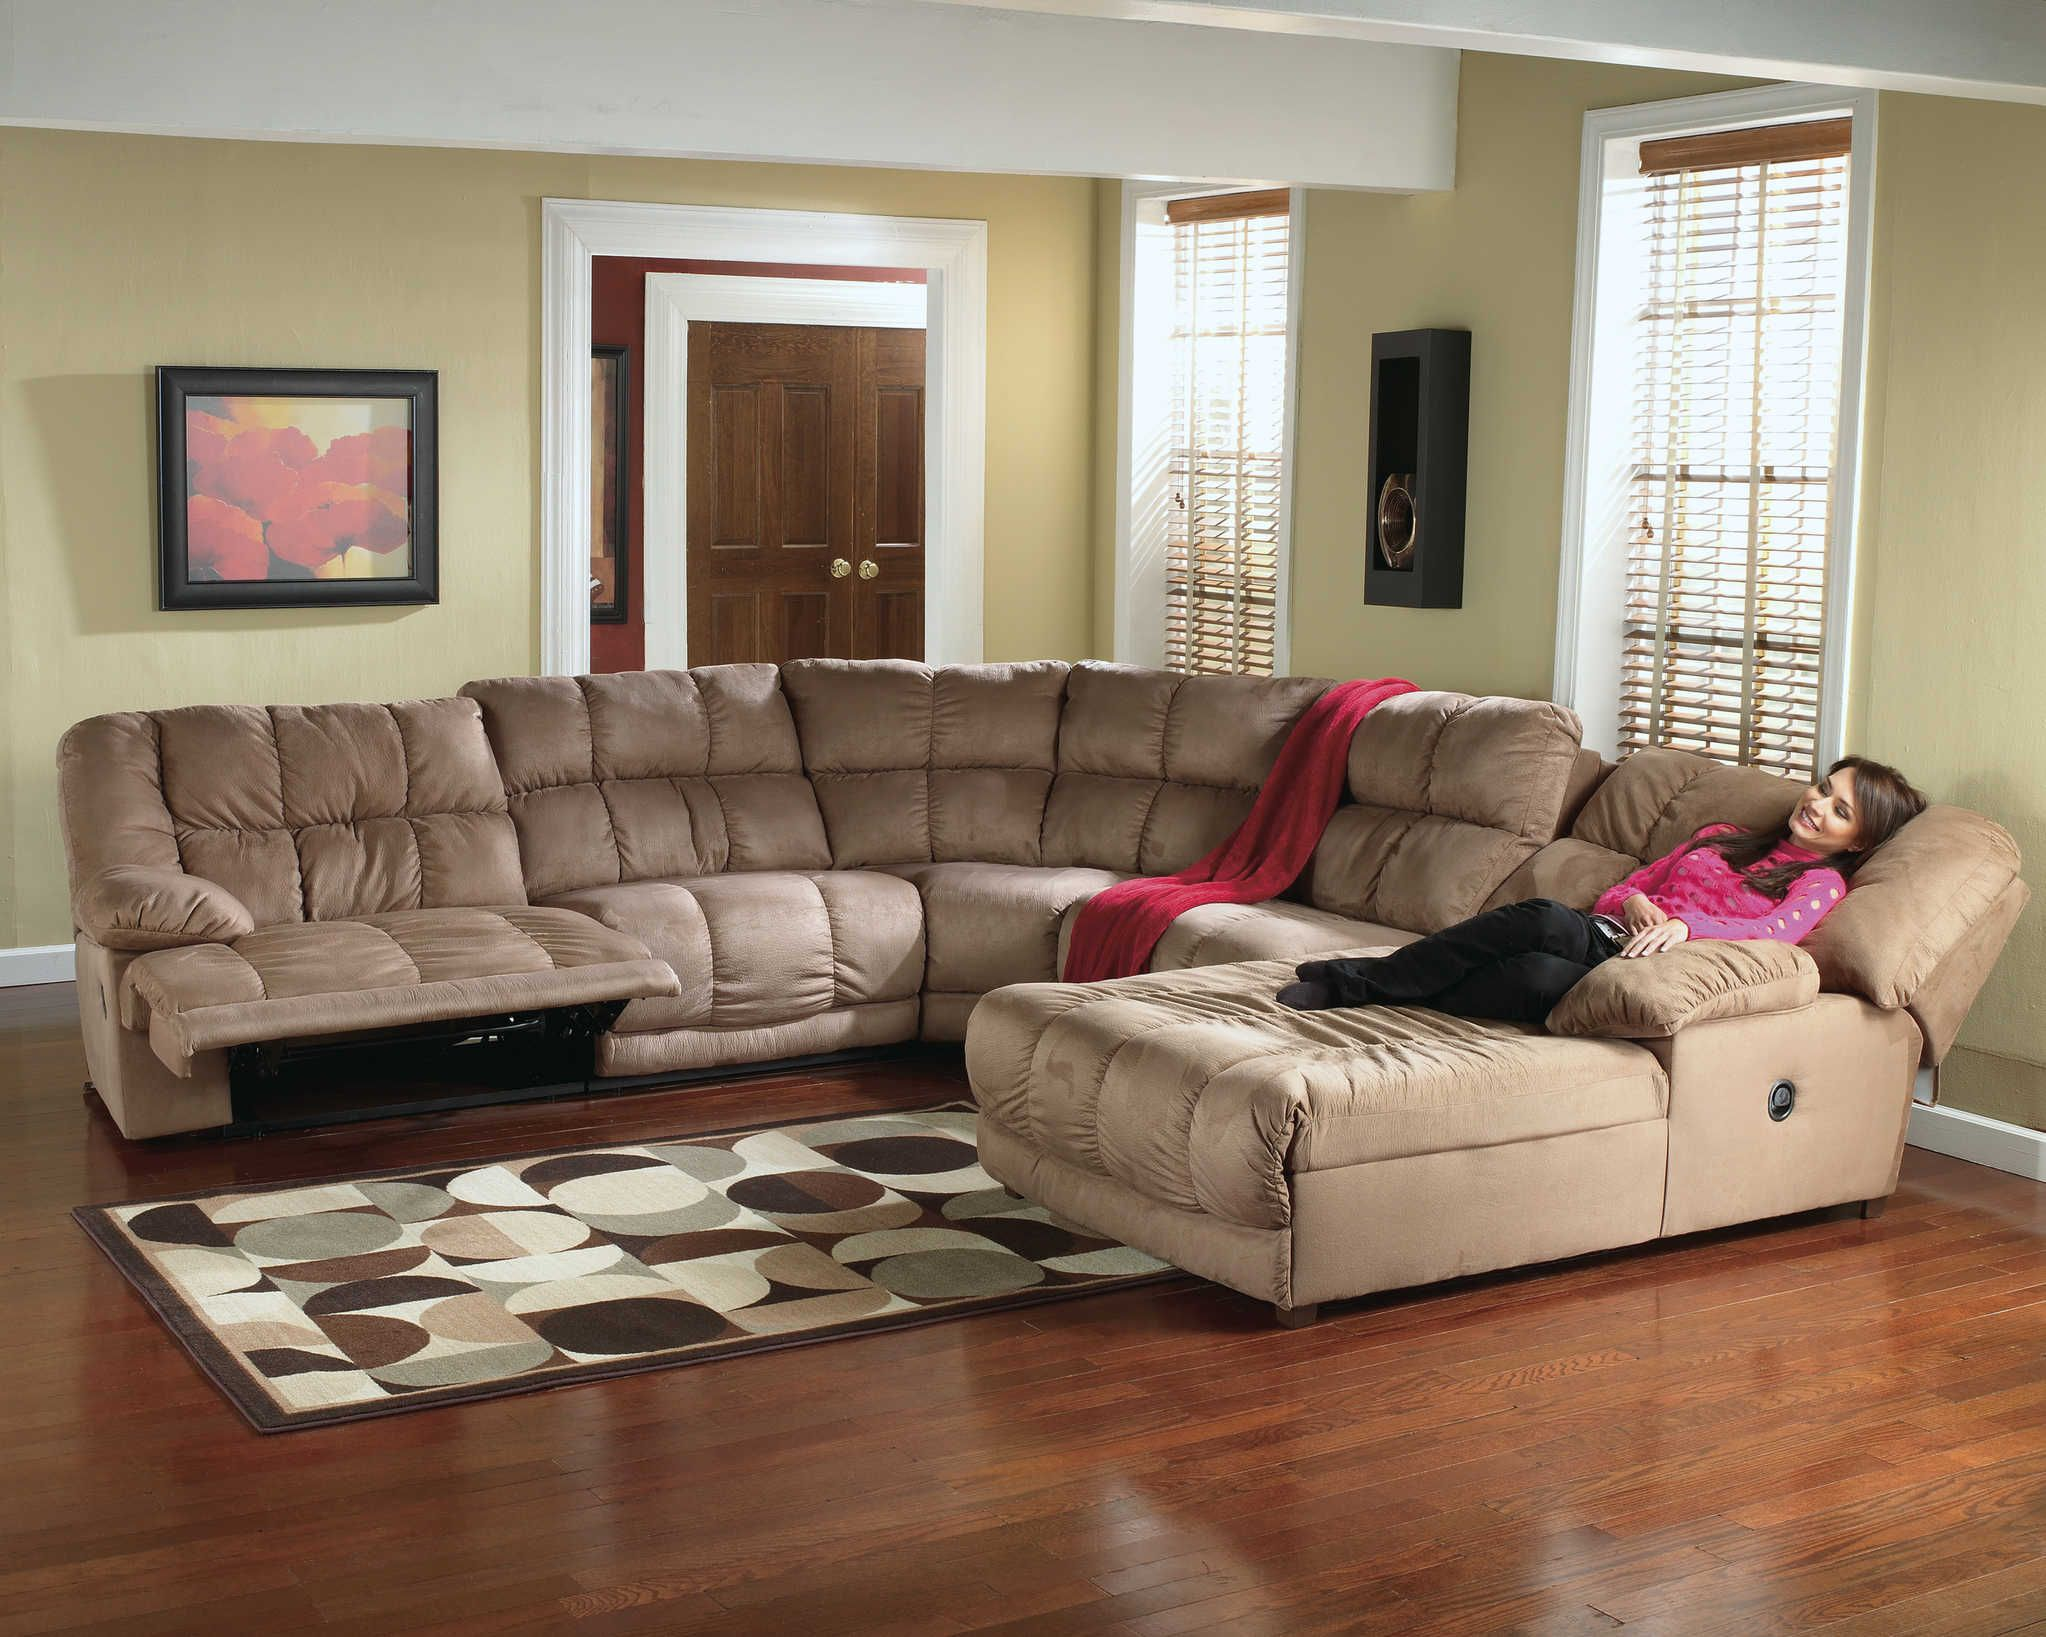 Microfiber Recliner Sectional | Sectional Sofa | Recliner Chaise 260 : sofa with recliner and chaise - islam-shia.org